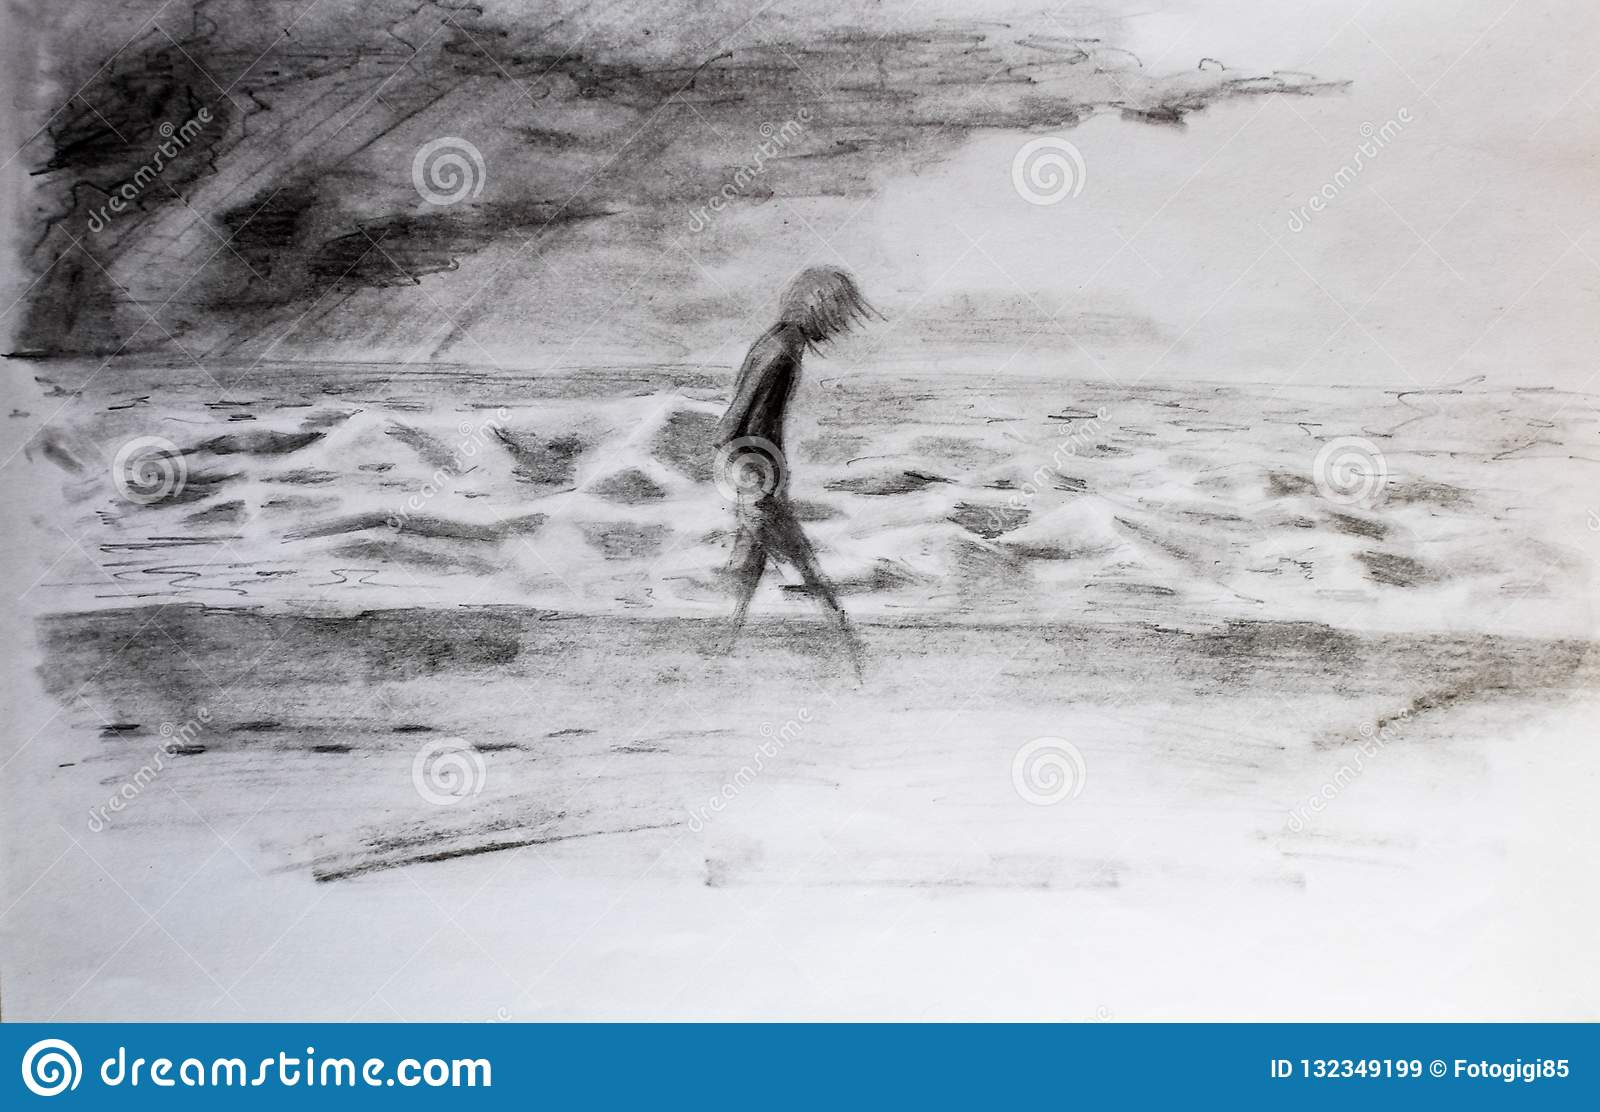 Man walks along the sea in storm and bad weather pencil drawing